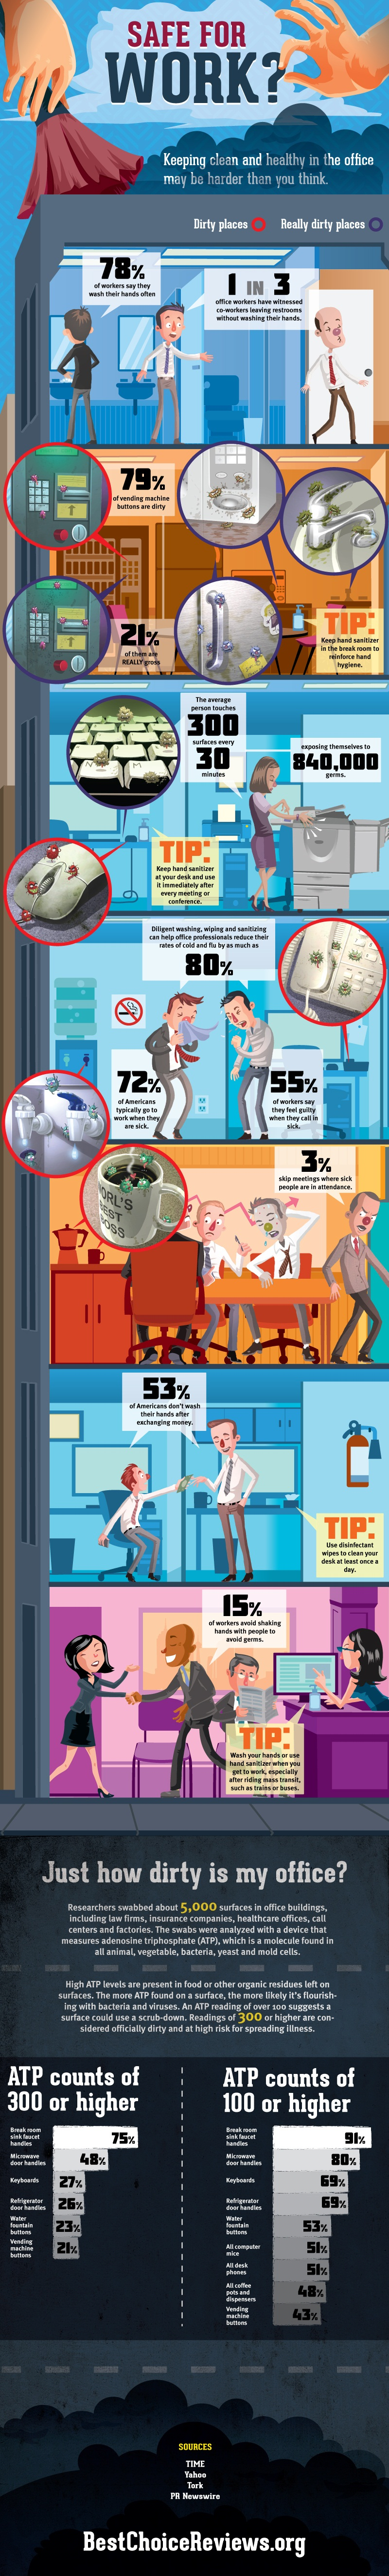 Office Germs: Just How Dirty is YOUR Office? [Infographic ...